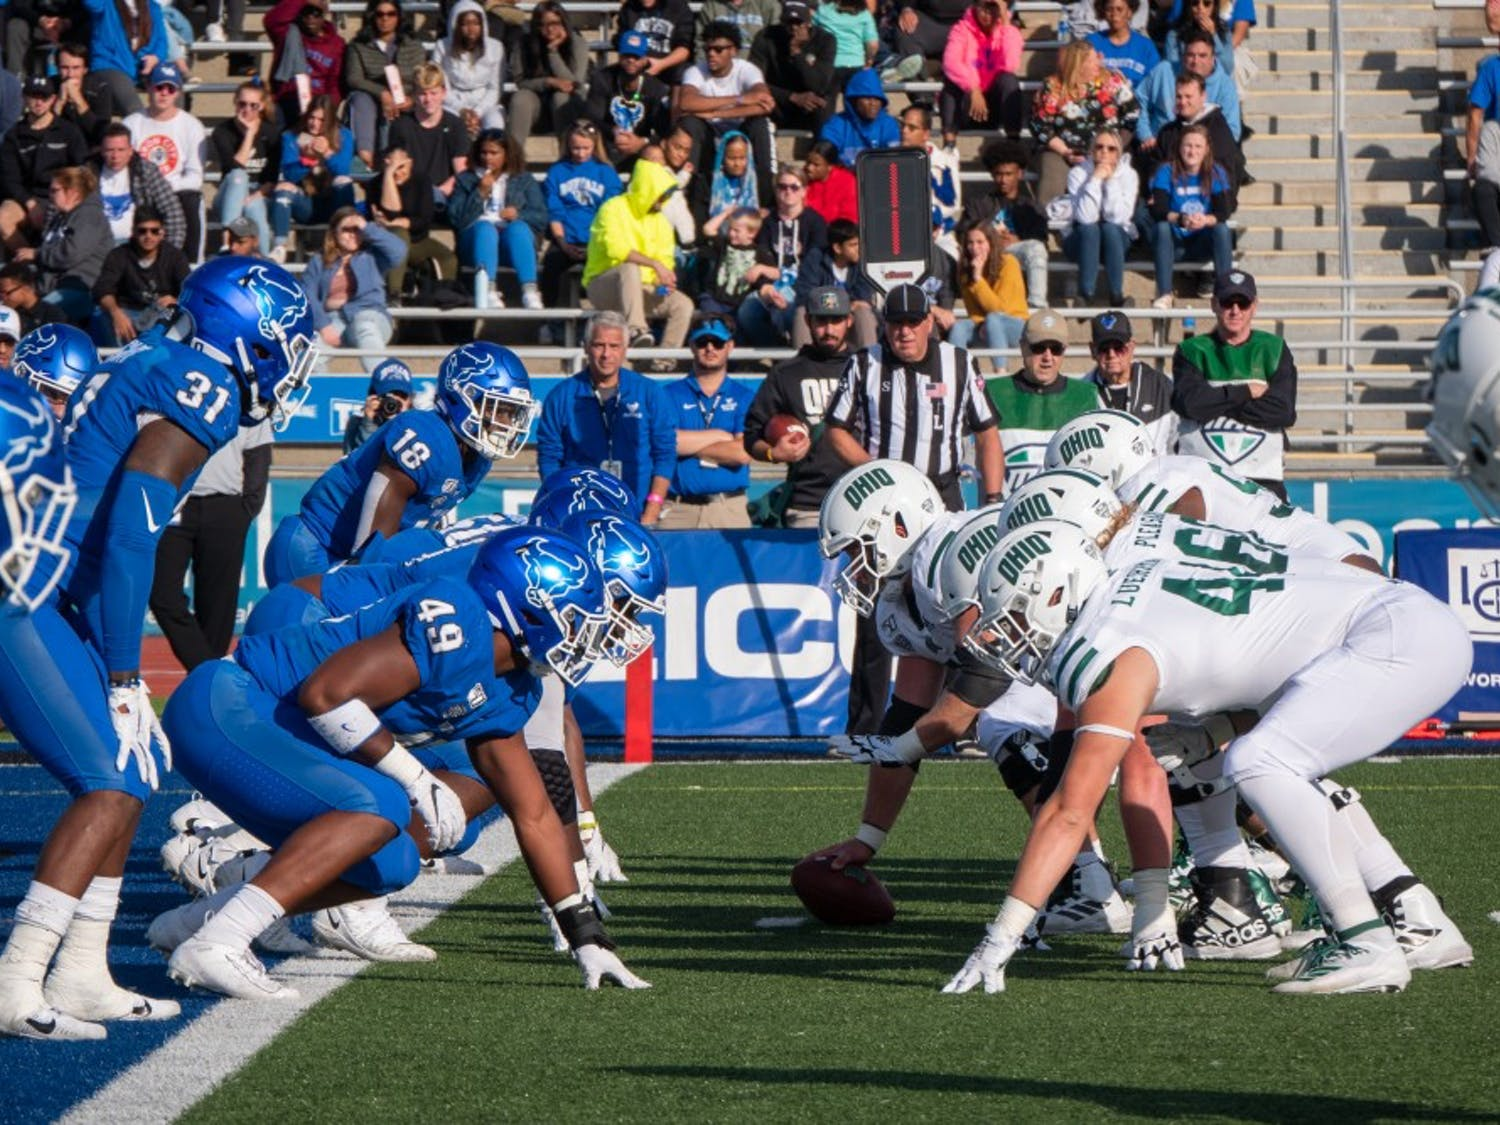 UB defends the end zone in last season's game against Ohio.